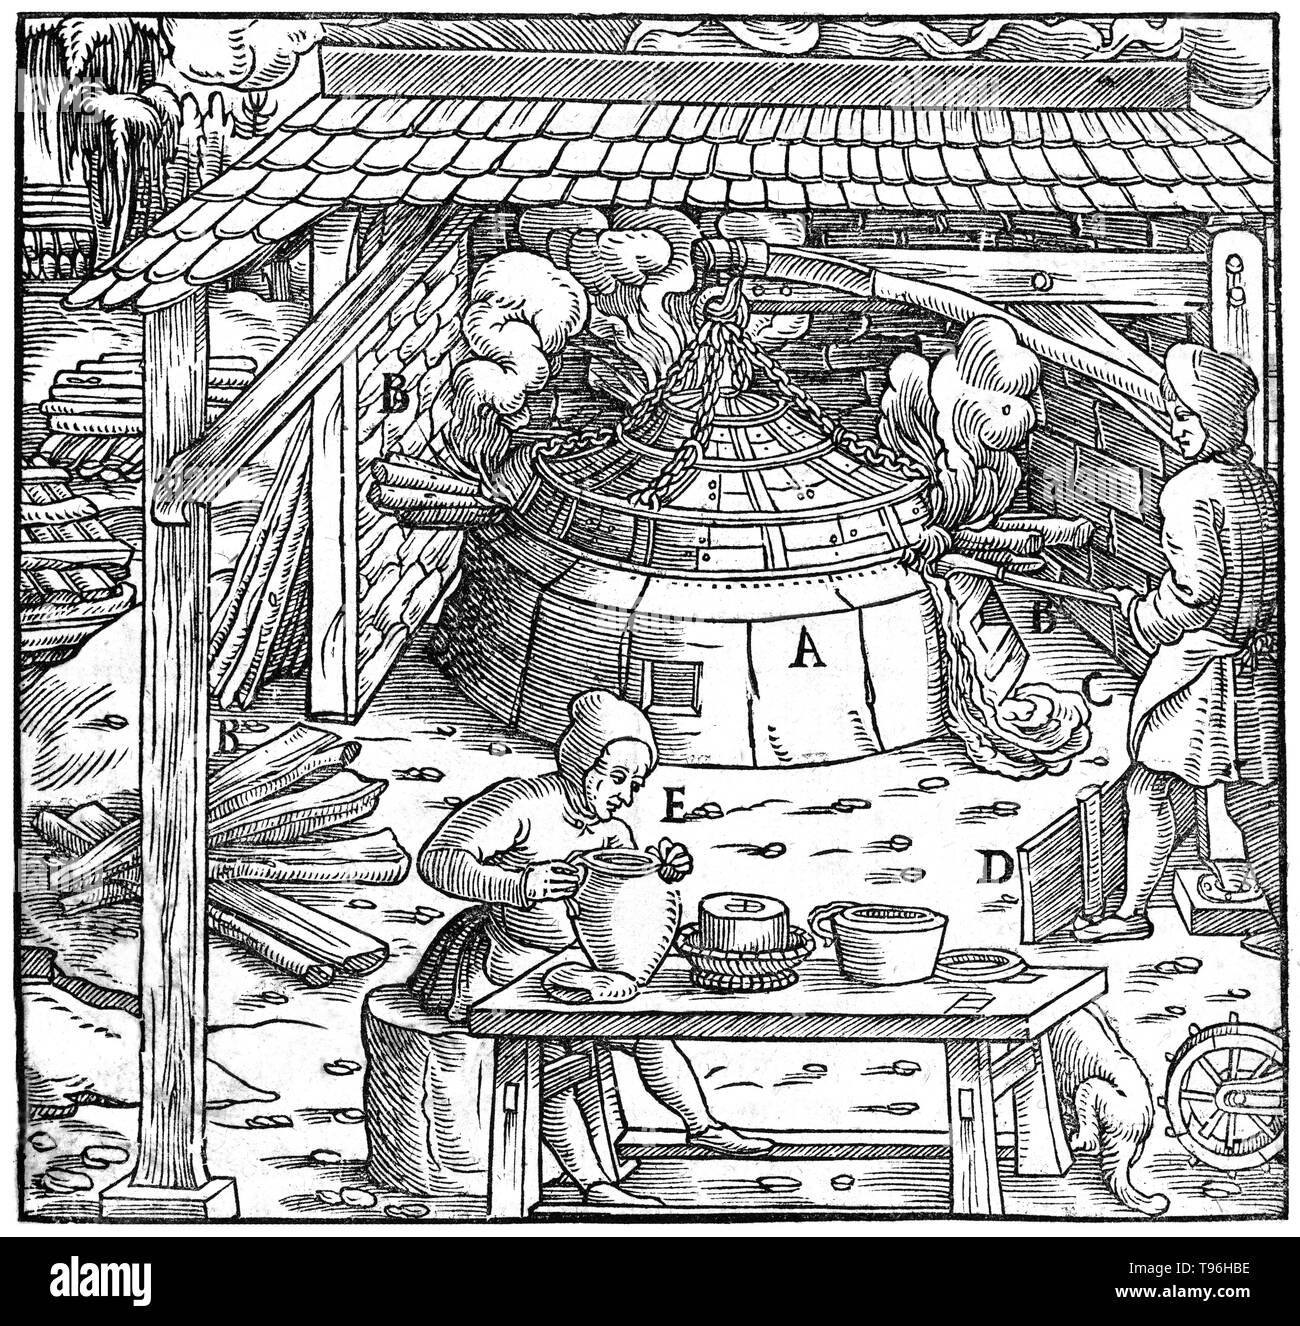 Woodcut from De Re Metallica. Alchemists or metallurgists separating lead from silver or gold in a cupellation furnace. Georgius Agricola (March 24, 1494 - November 21, 1555) was a German scholar known as 'the father of mineralogy'. His book De Re Metallica, published in 1556, was a treatise on mining and extractive metallurgy, illustrated with woodcuts illustrating processes to extract ores from the ground and metal from the ore, and the many uses of water mills in mining. Agricola described and illustrated how ore veins occur in and on the ground, making the work an early contribution to the - Stock Image